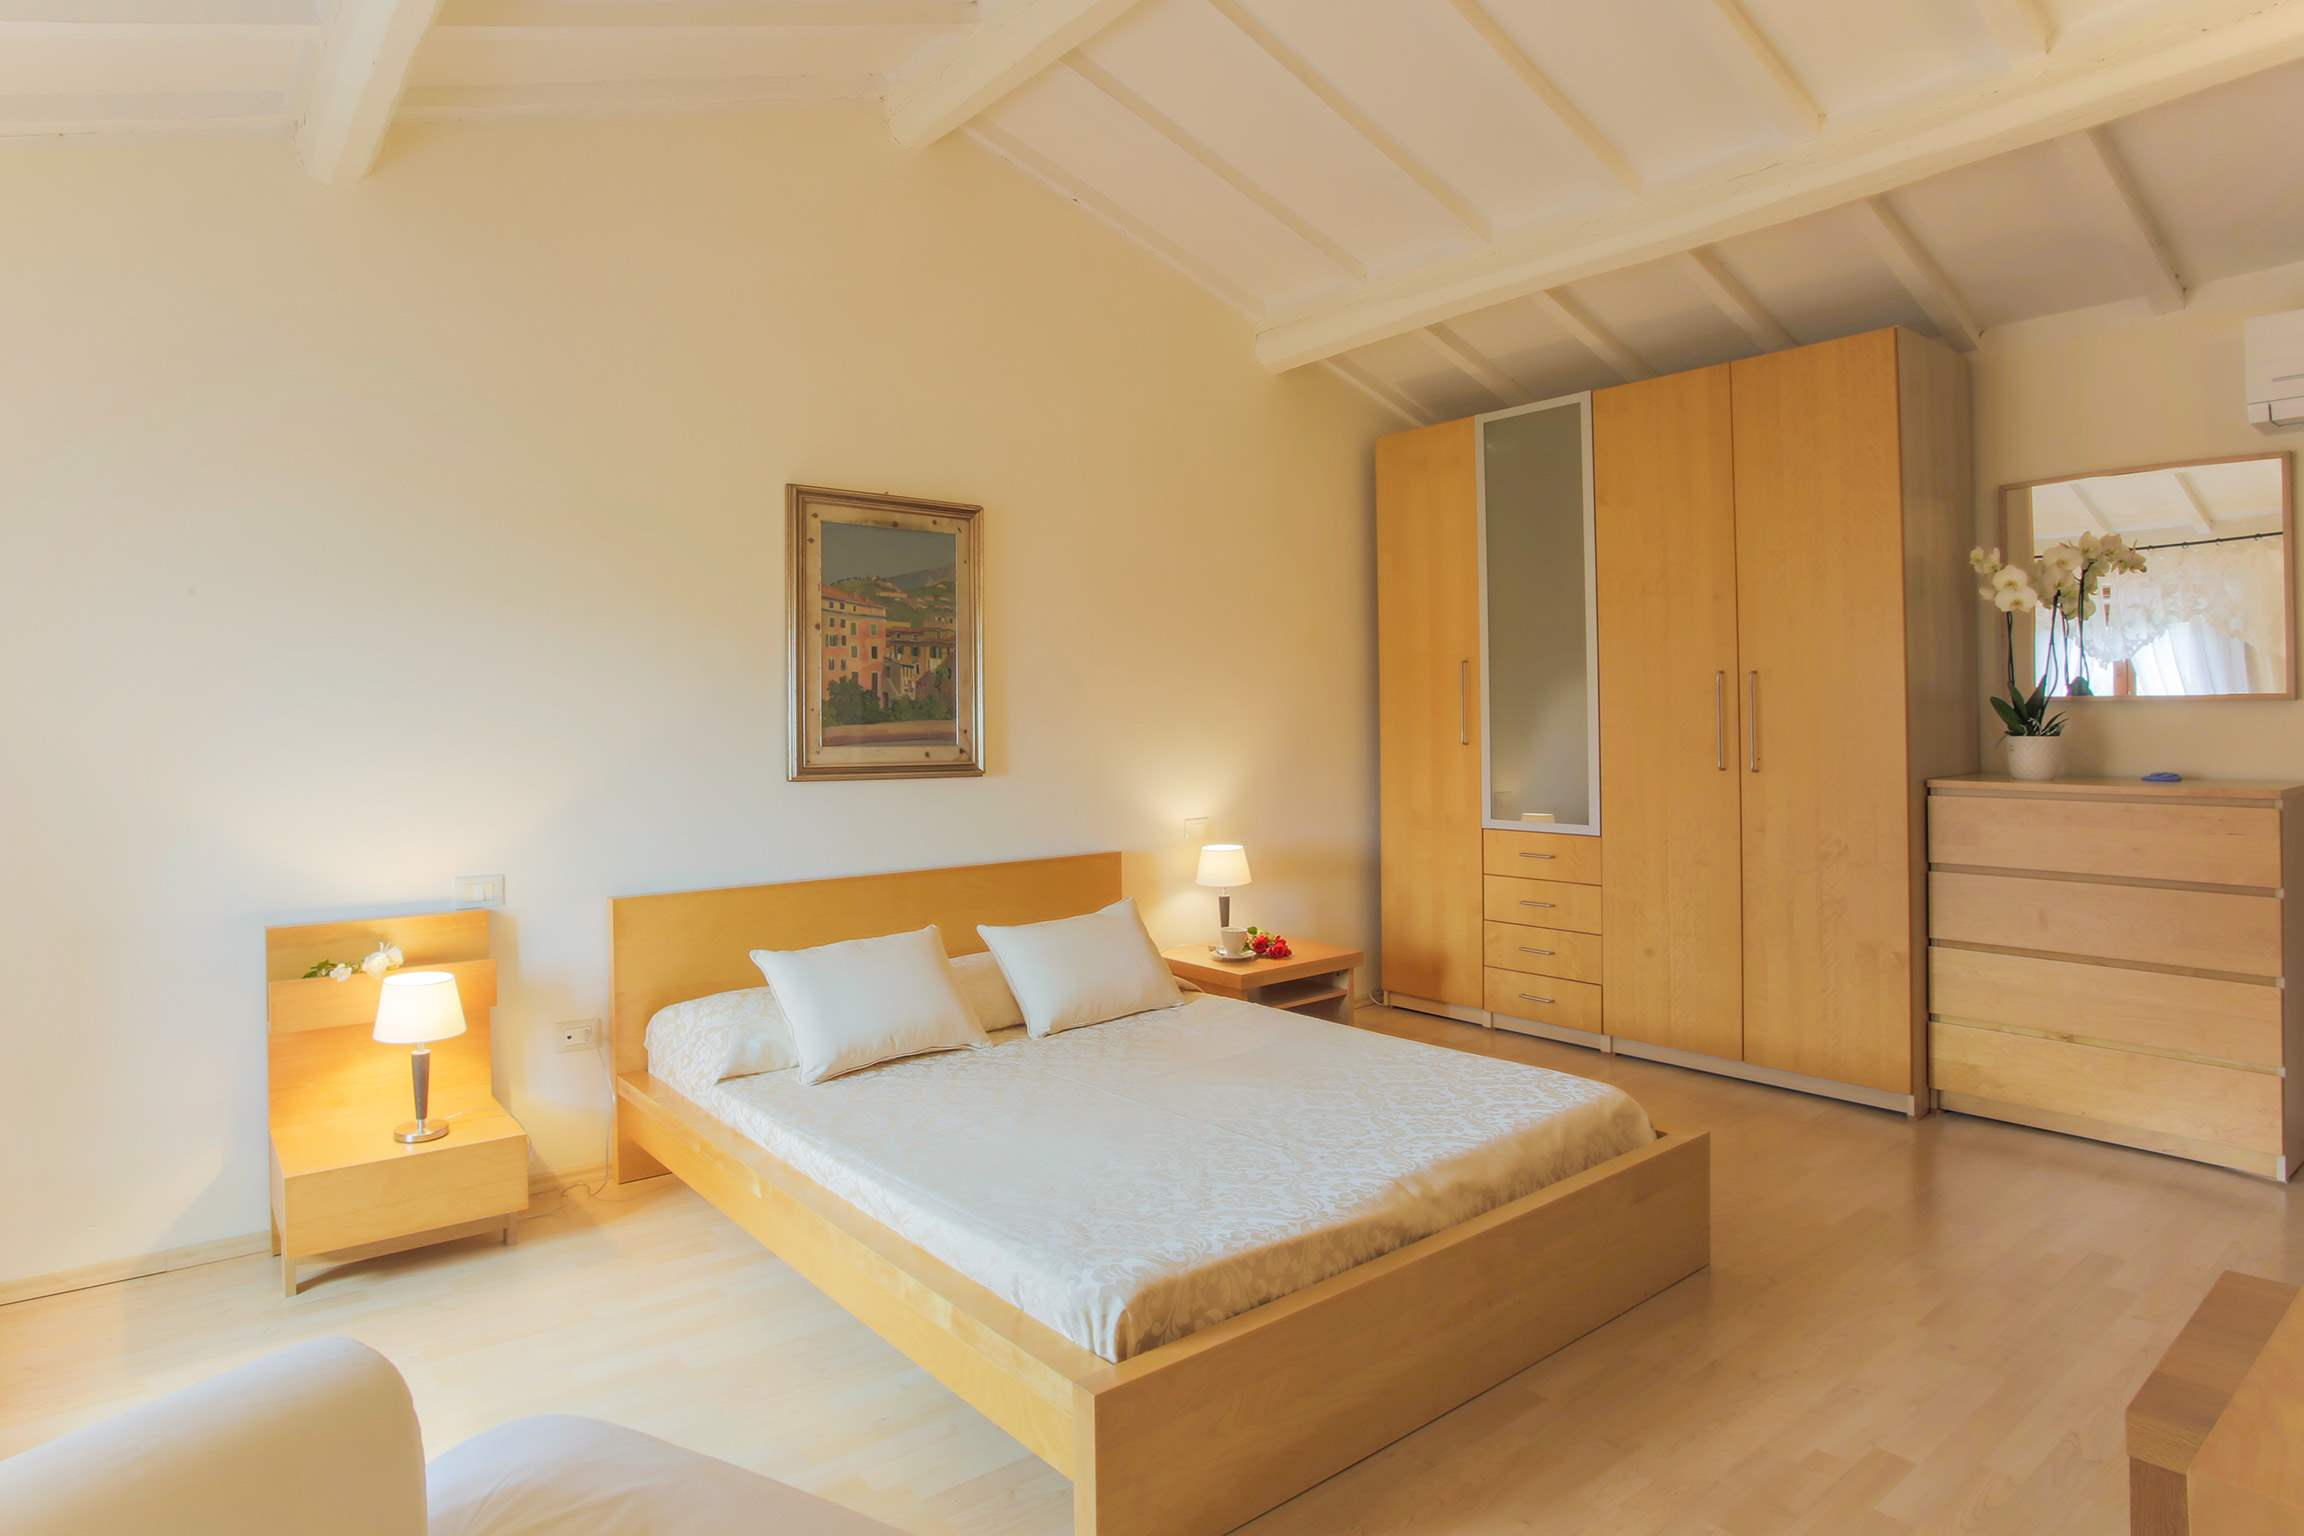 Casa Di Dante, 3 bedroom villa in North Tuscany - Pisa & Lucca Area, Tuscany Photo #20